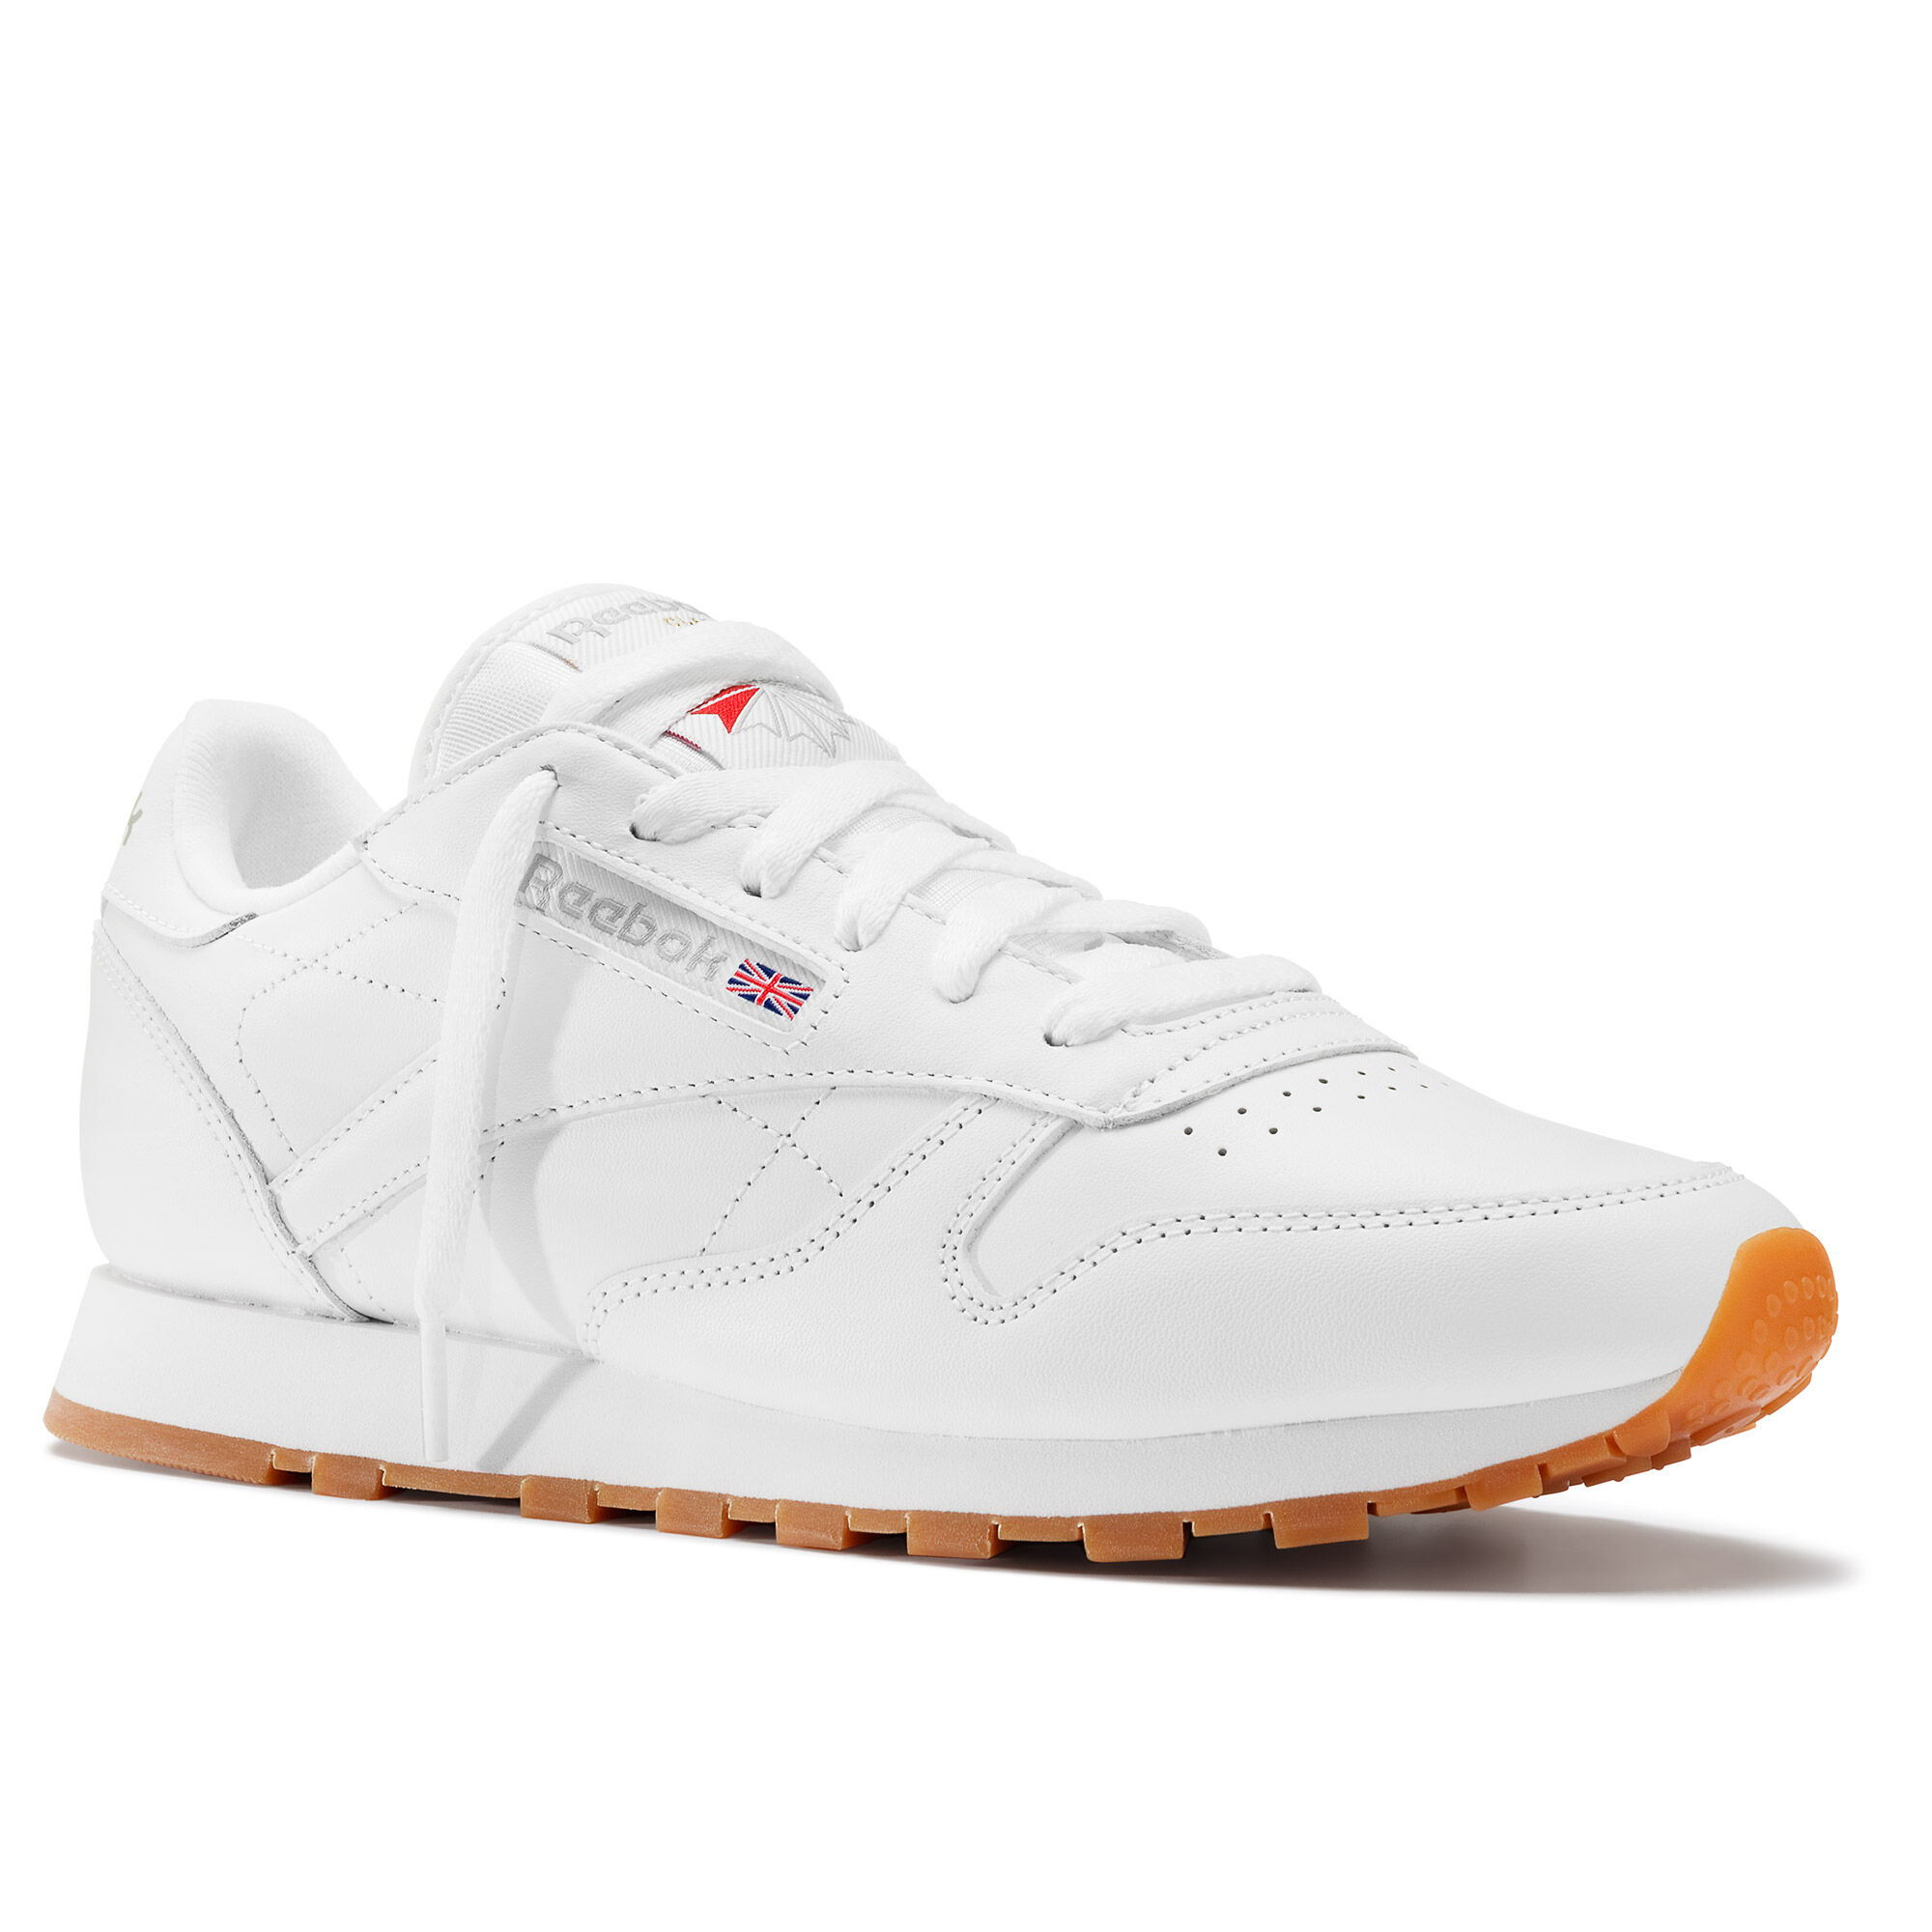 Chaussures Reebok Royal 39 blanches Casual 4ocm0Zx